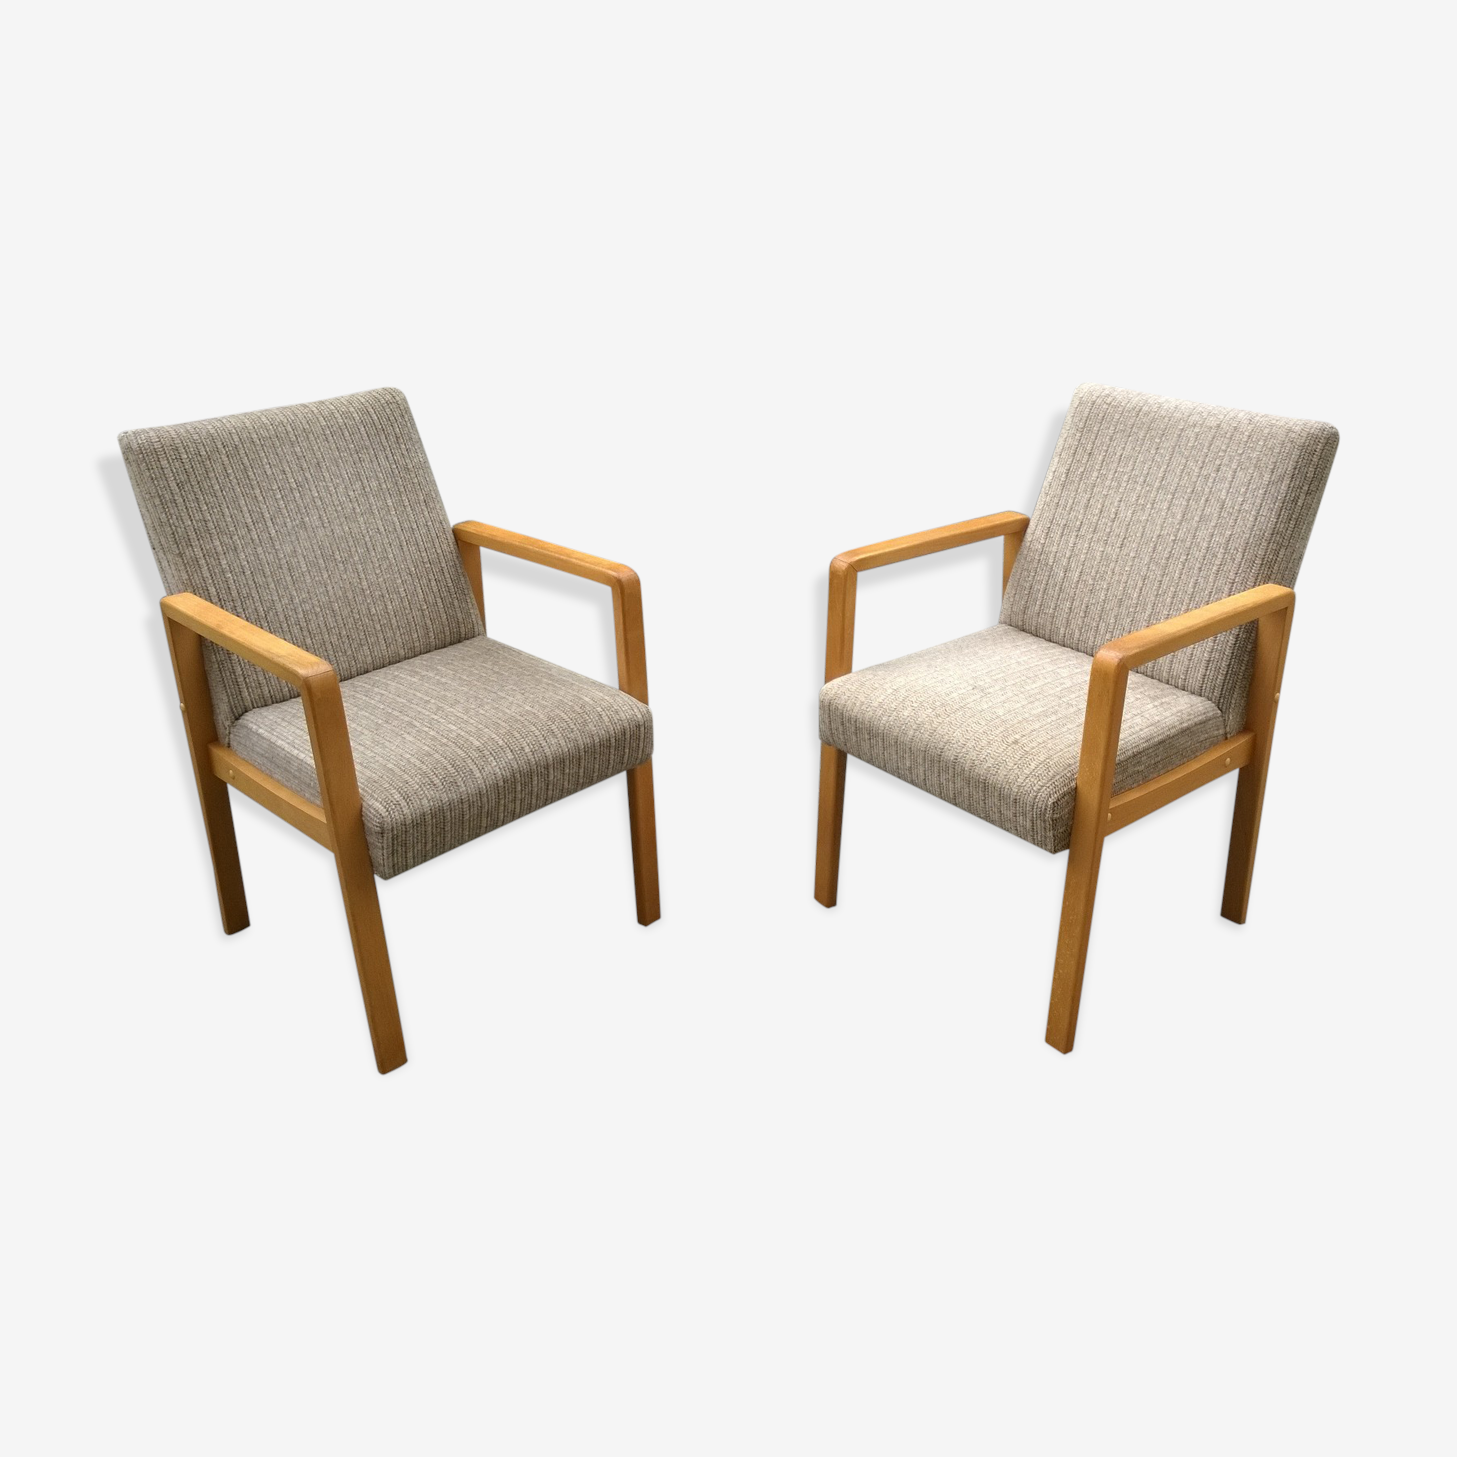 Armchairs modernist years 60